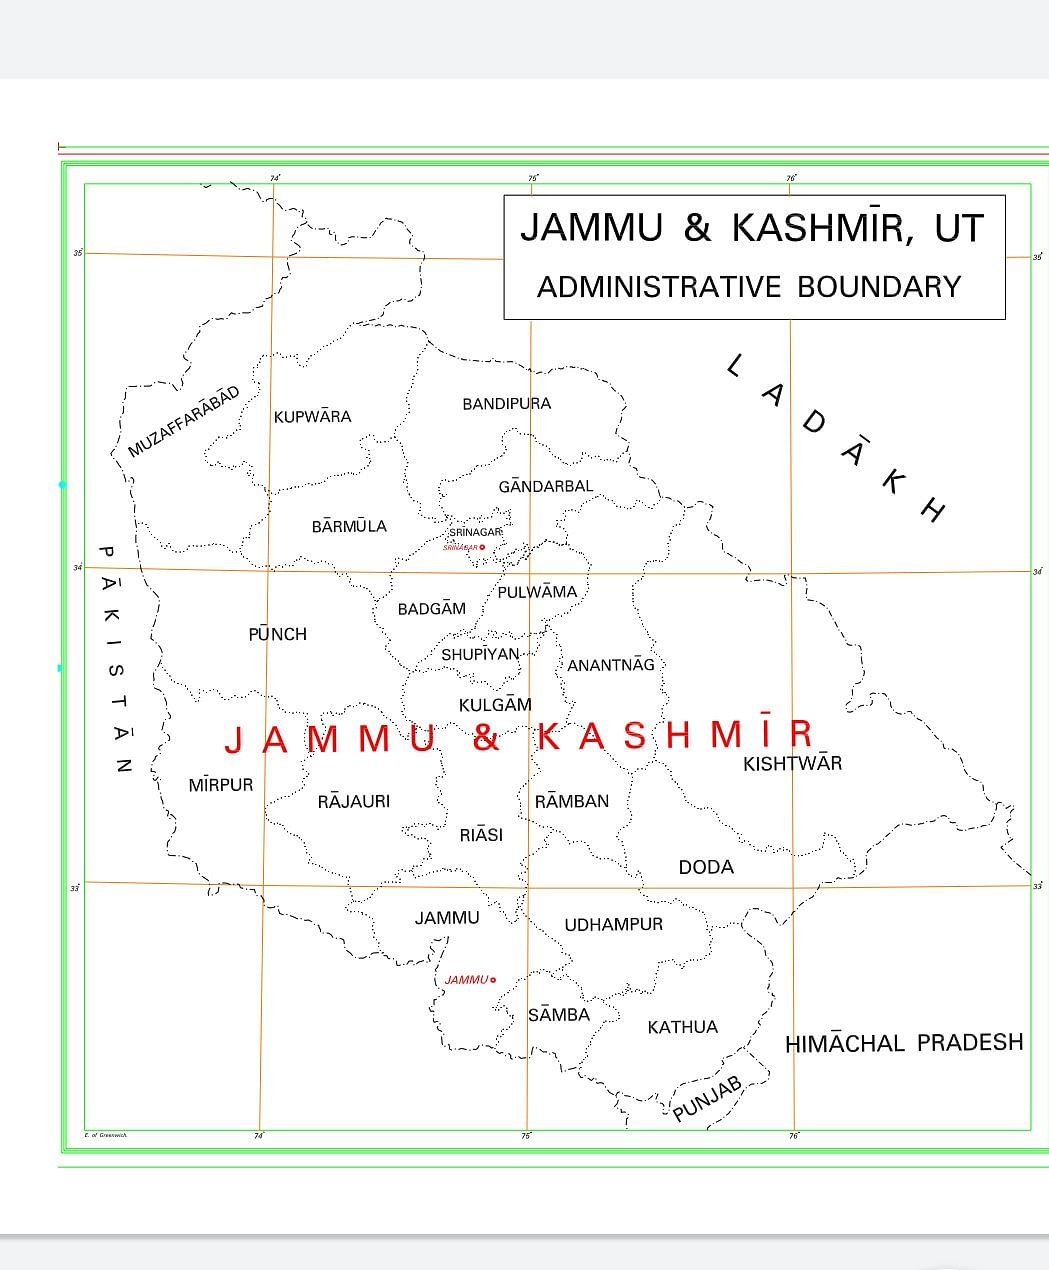 28 states, 9 Union Territories: Check out the new map of India after bifurcation of J&K and Ladakh